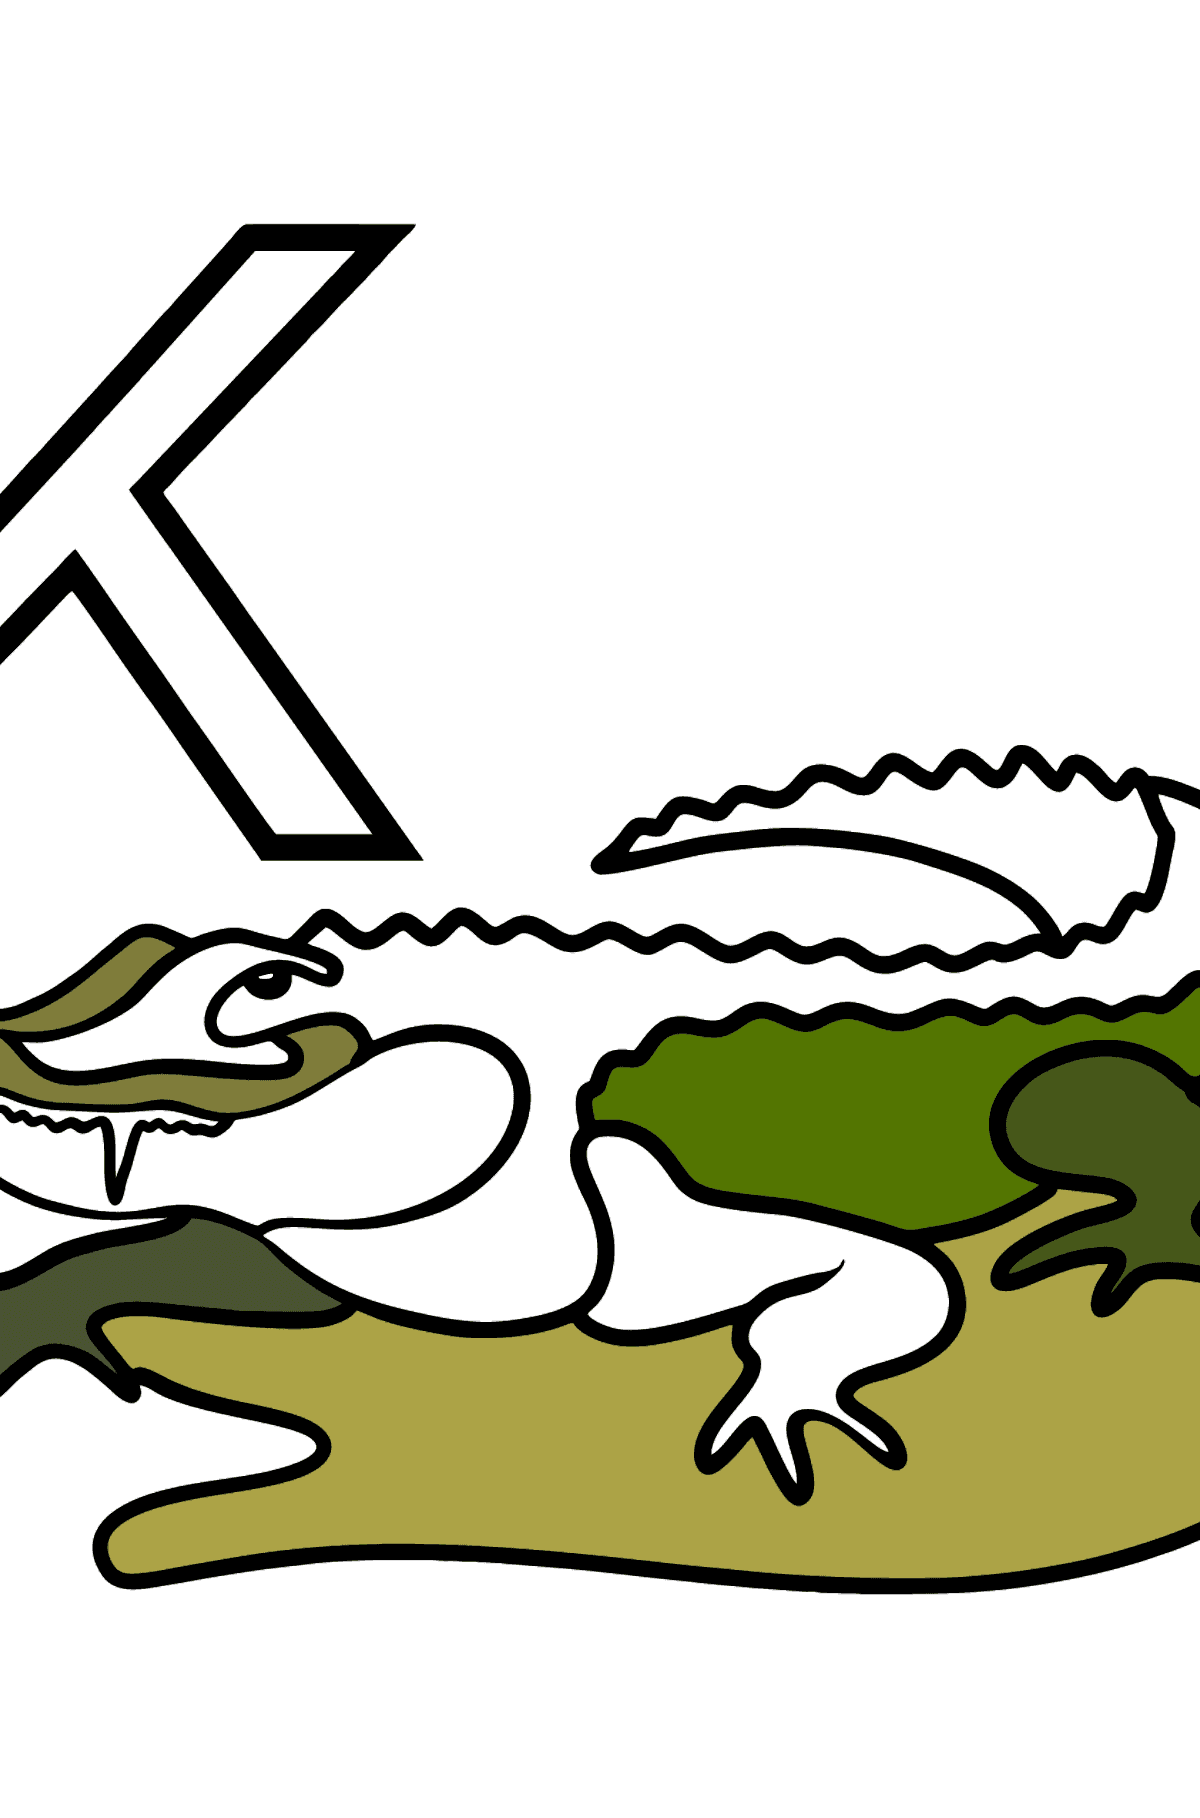 German Letter K coloring pages - KROKODIL - Coloring Pages for Kids